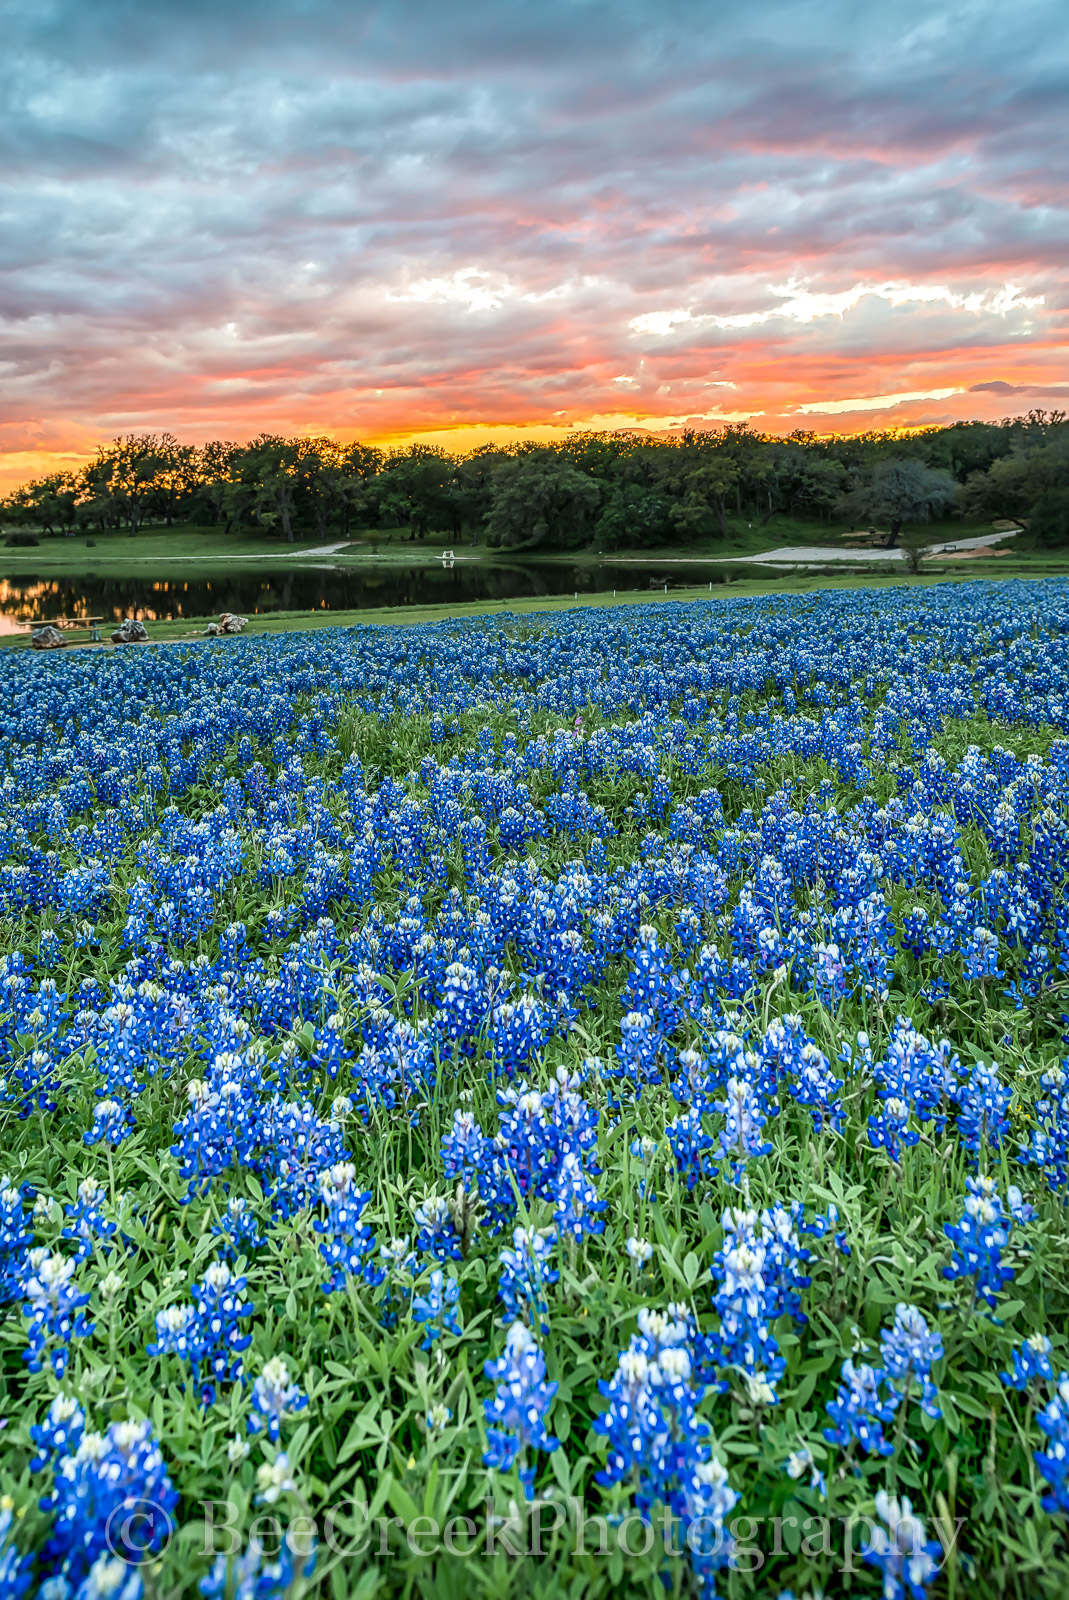 bluebonnets, bluebonnet, wildflowers, wildflower, sunset, firey, sky, colors, colorful, clouds, Texas Flowers, Texas wildflowers, Texas, flauna, flora, flowers, images of texas, landscapes, , photo